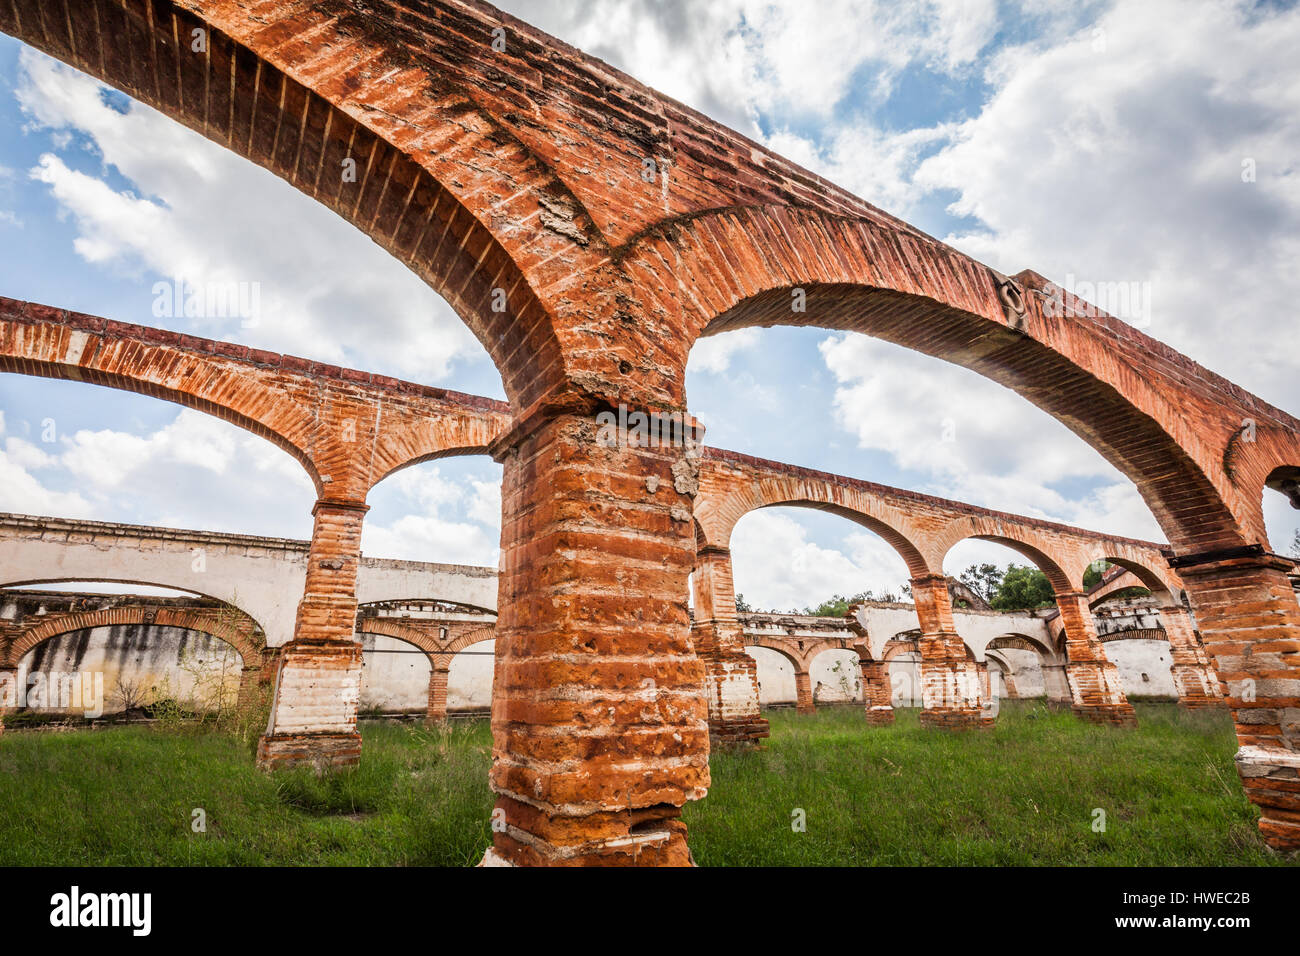 Old abandoned arches at the ex-hacienda Gogorron in San Luis Potosi, Mexico. - Stock Image